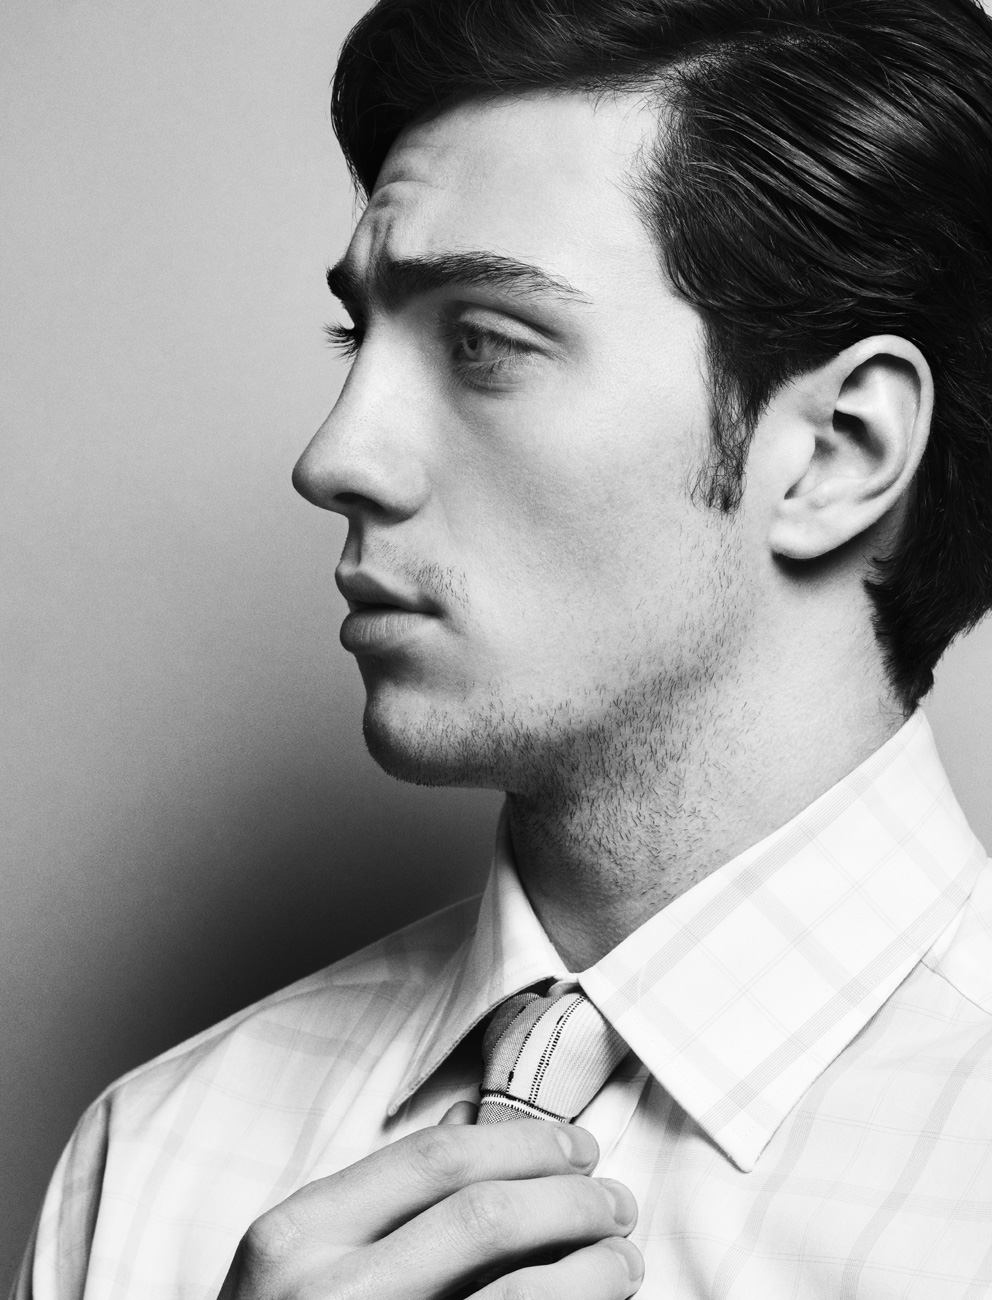 Aaron Johnson: My Favourite Bad Boy | Frame by Frame